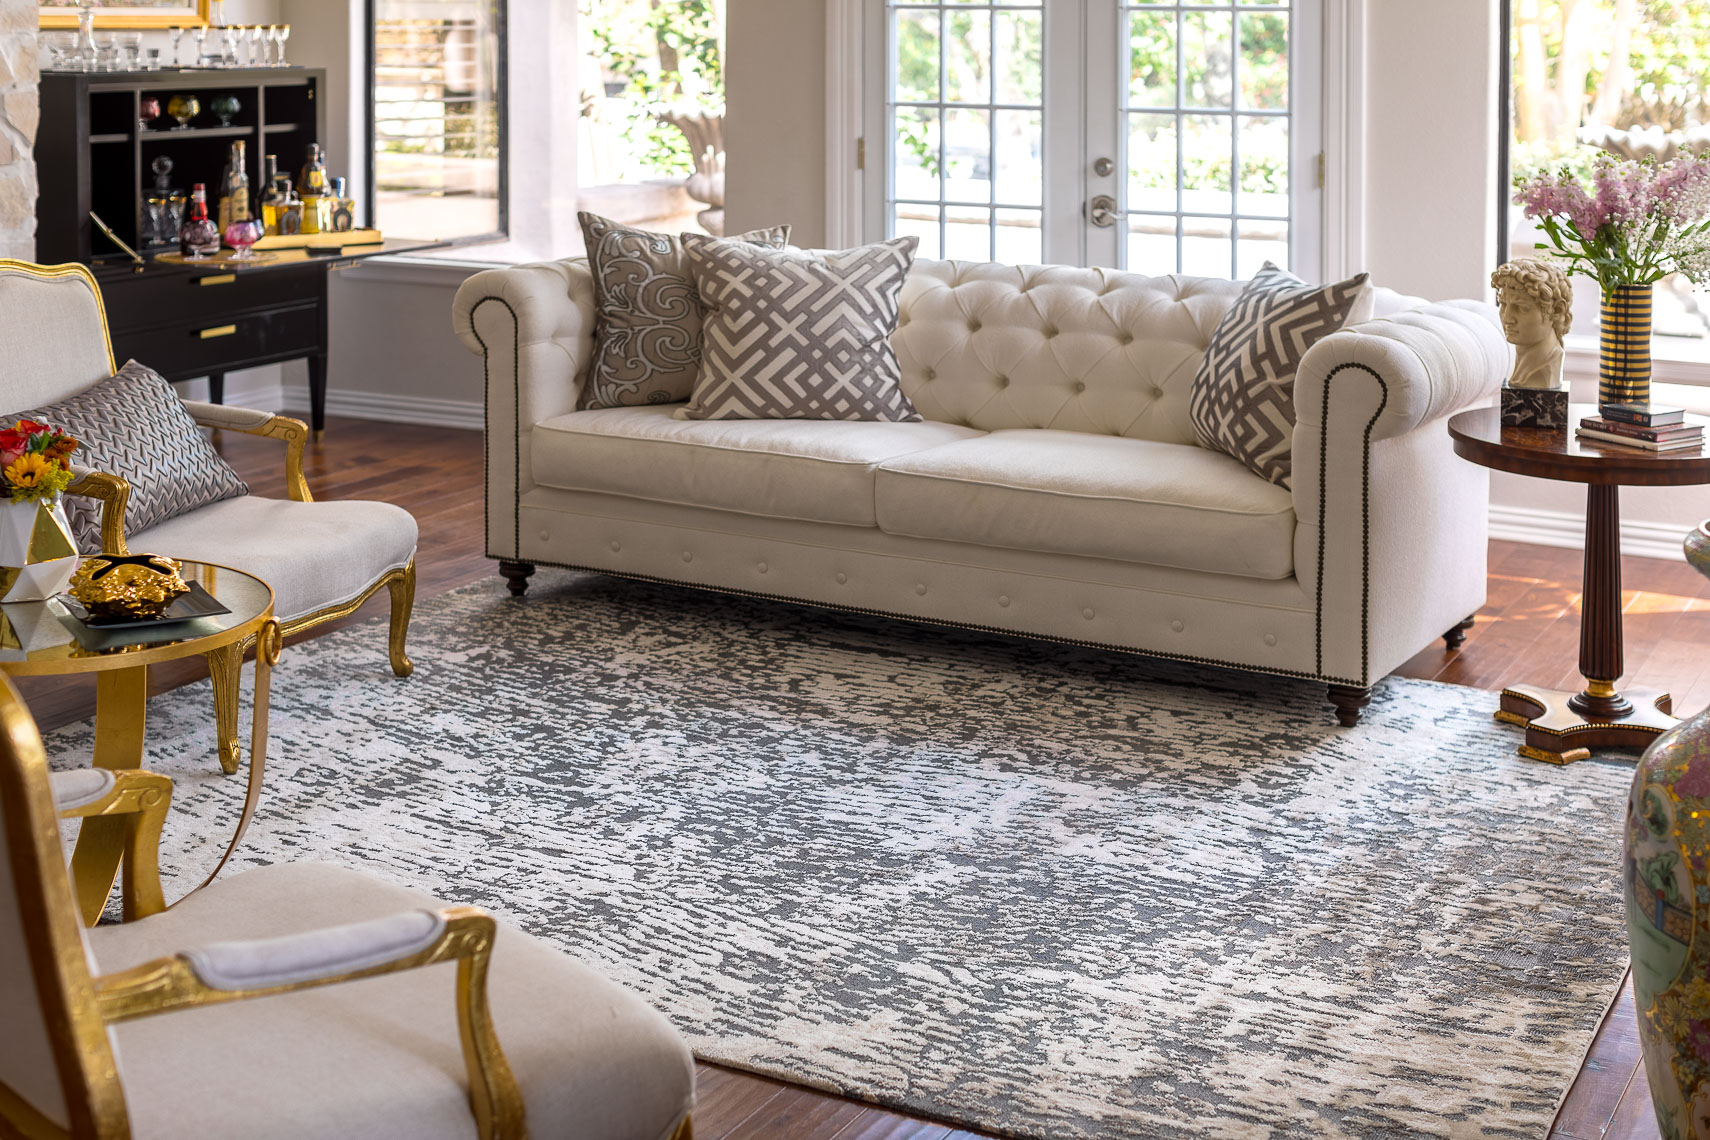 lili-alessandra-luxury-rugs-jason-risner-photography-0806